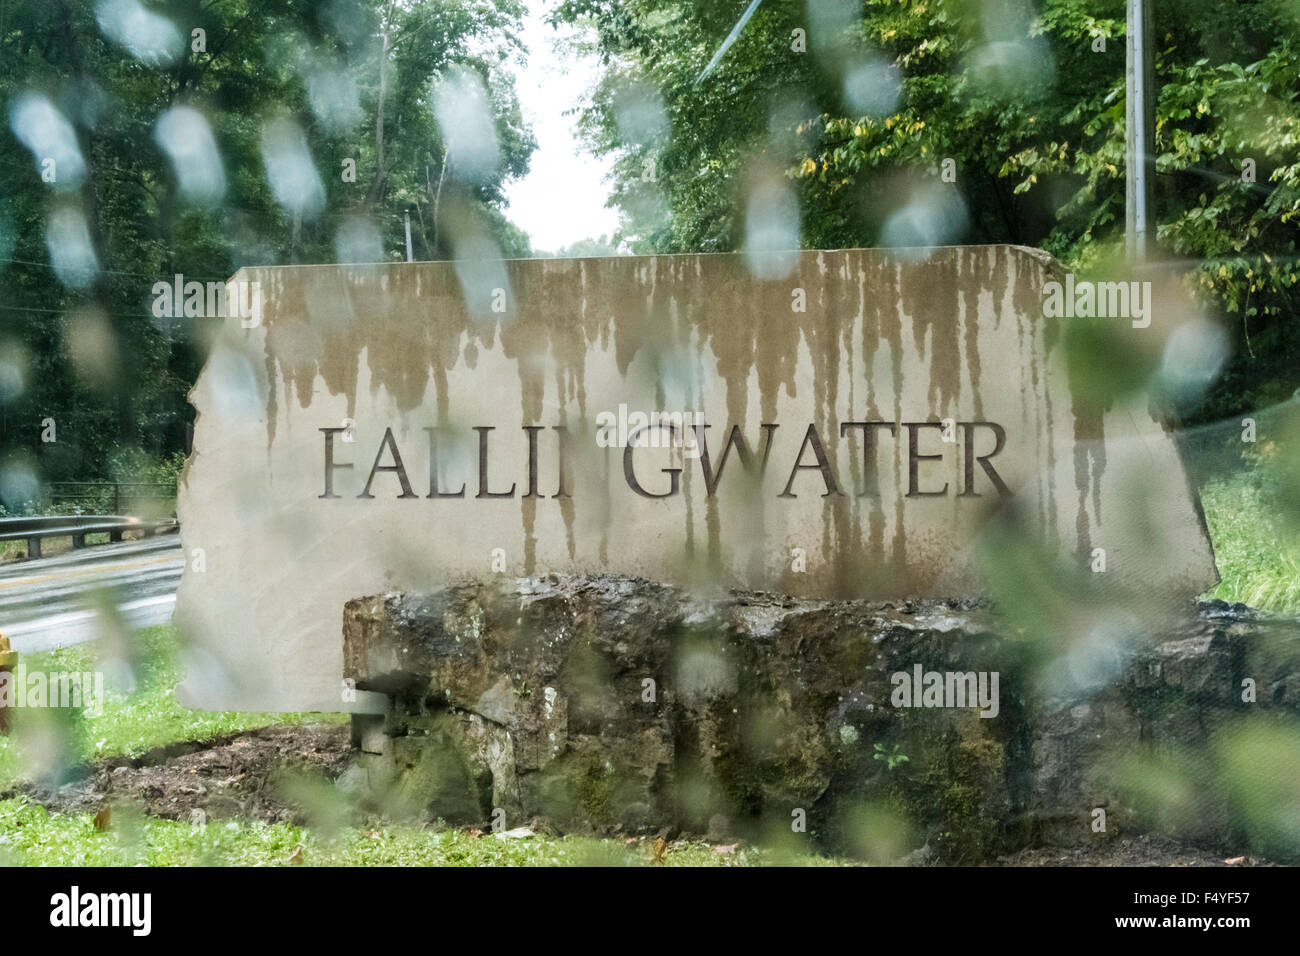 https://c7.alamy.com/comp/F4YF57/fallingwater-road-sign-in-the-rain-F4YF57.jpg